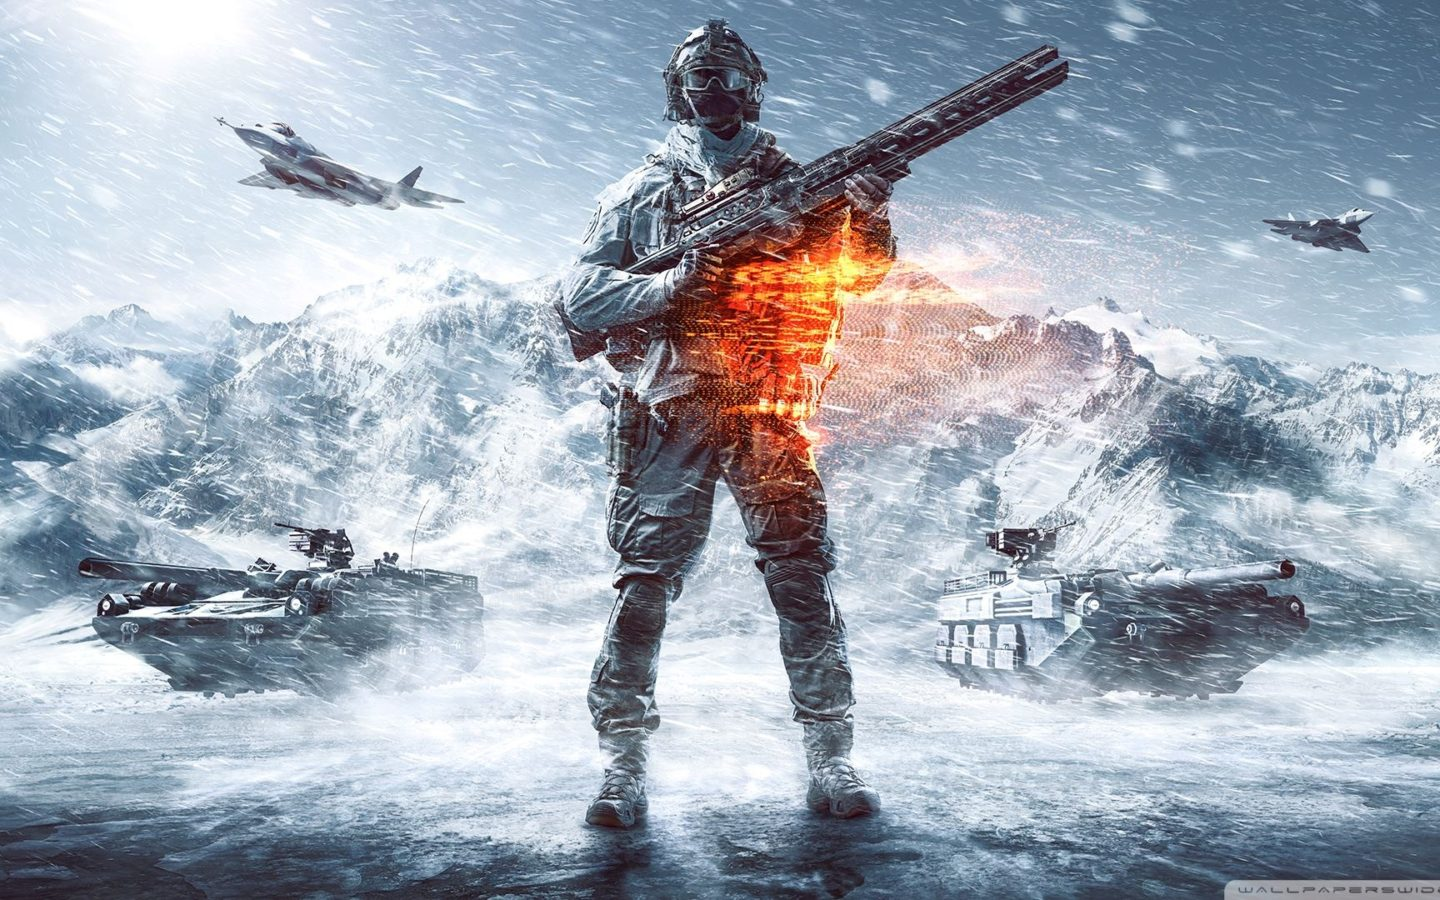 battlefield_4_final_stand_2-wallpaper-1920x1080-1440x900.jpg